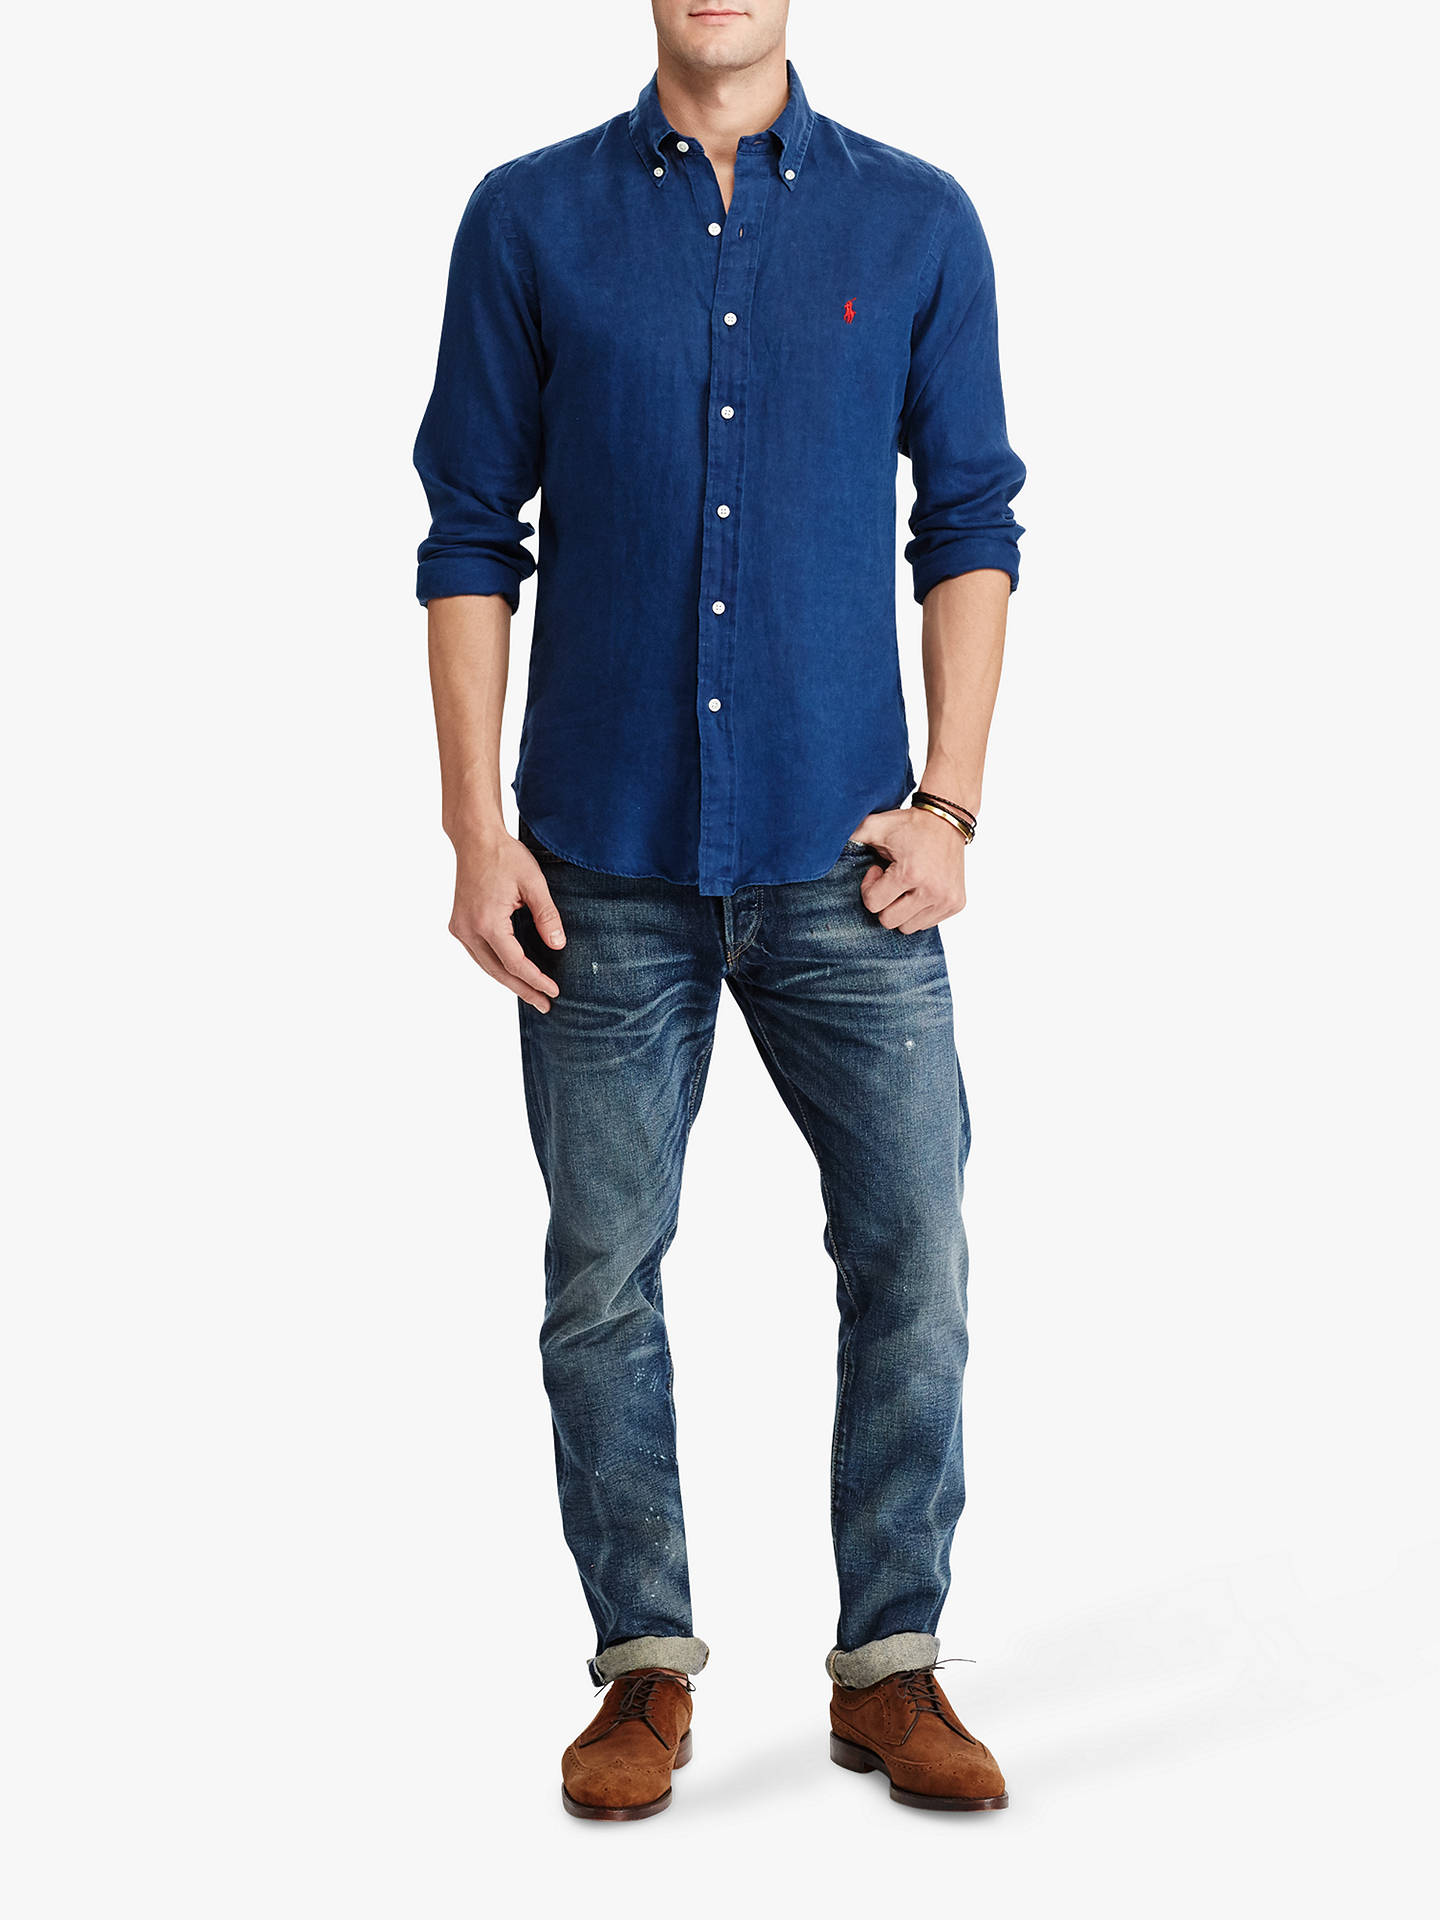 Buy Polo Ralph Lauren Linen Long Sleeve Shirt, Holiday Navy, M Online at johnlewis.com